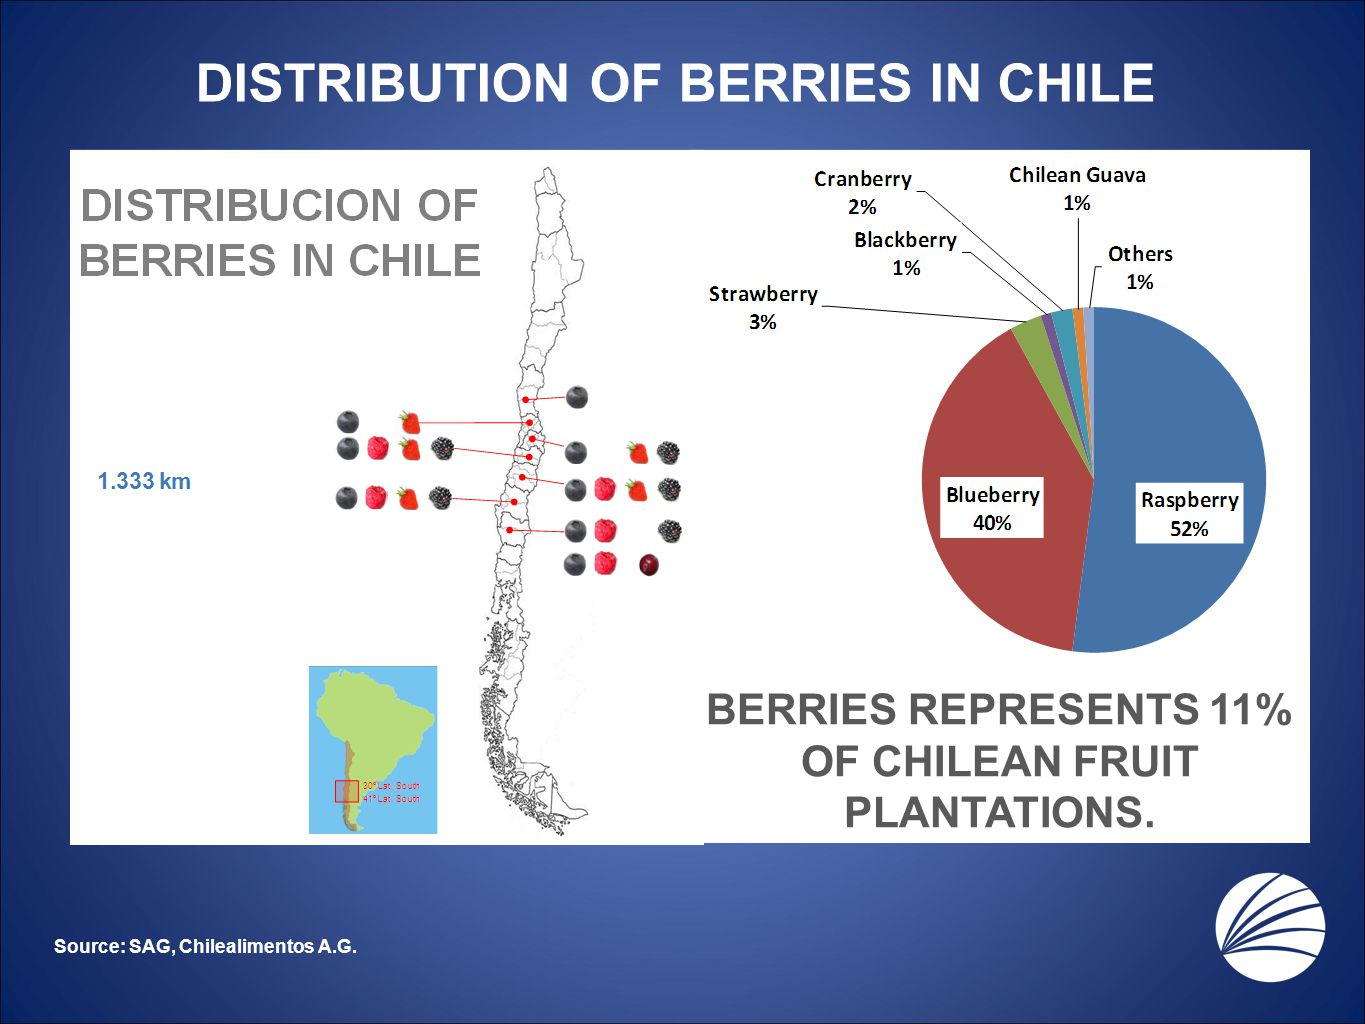 DISTRIBUTION OF BERRIES IN CHILE Source: SAG, Chilealimentos A.G. BERRIES REPRESENTS 11% OF CHILEAN FRUIT PLANTATIONS.